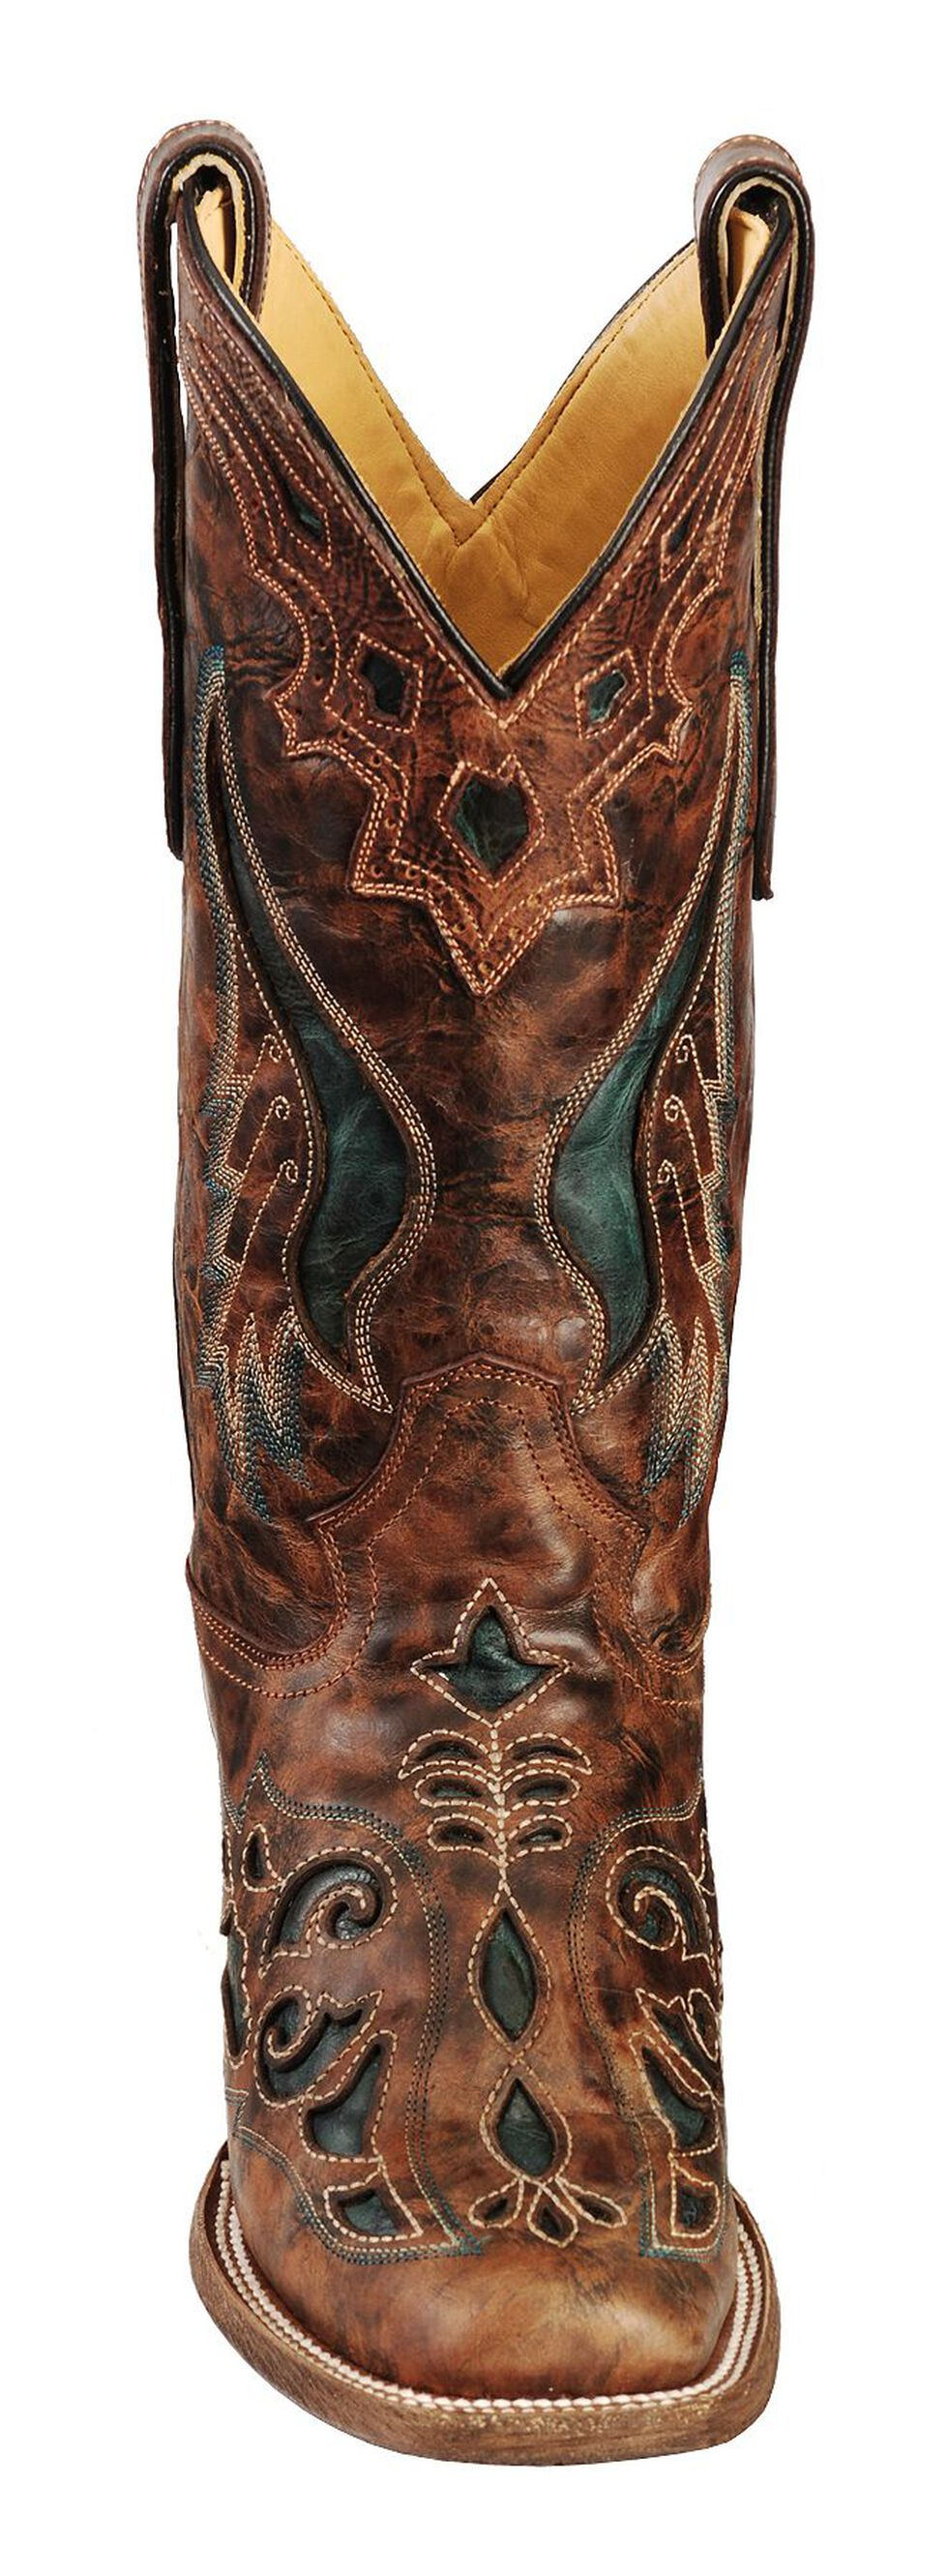 Corral Cognac & Olive Inlay Cowgirl Boots - Square Toe, Cognac, hi-res